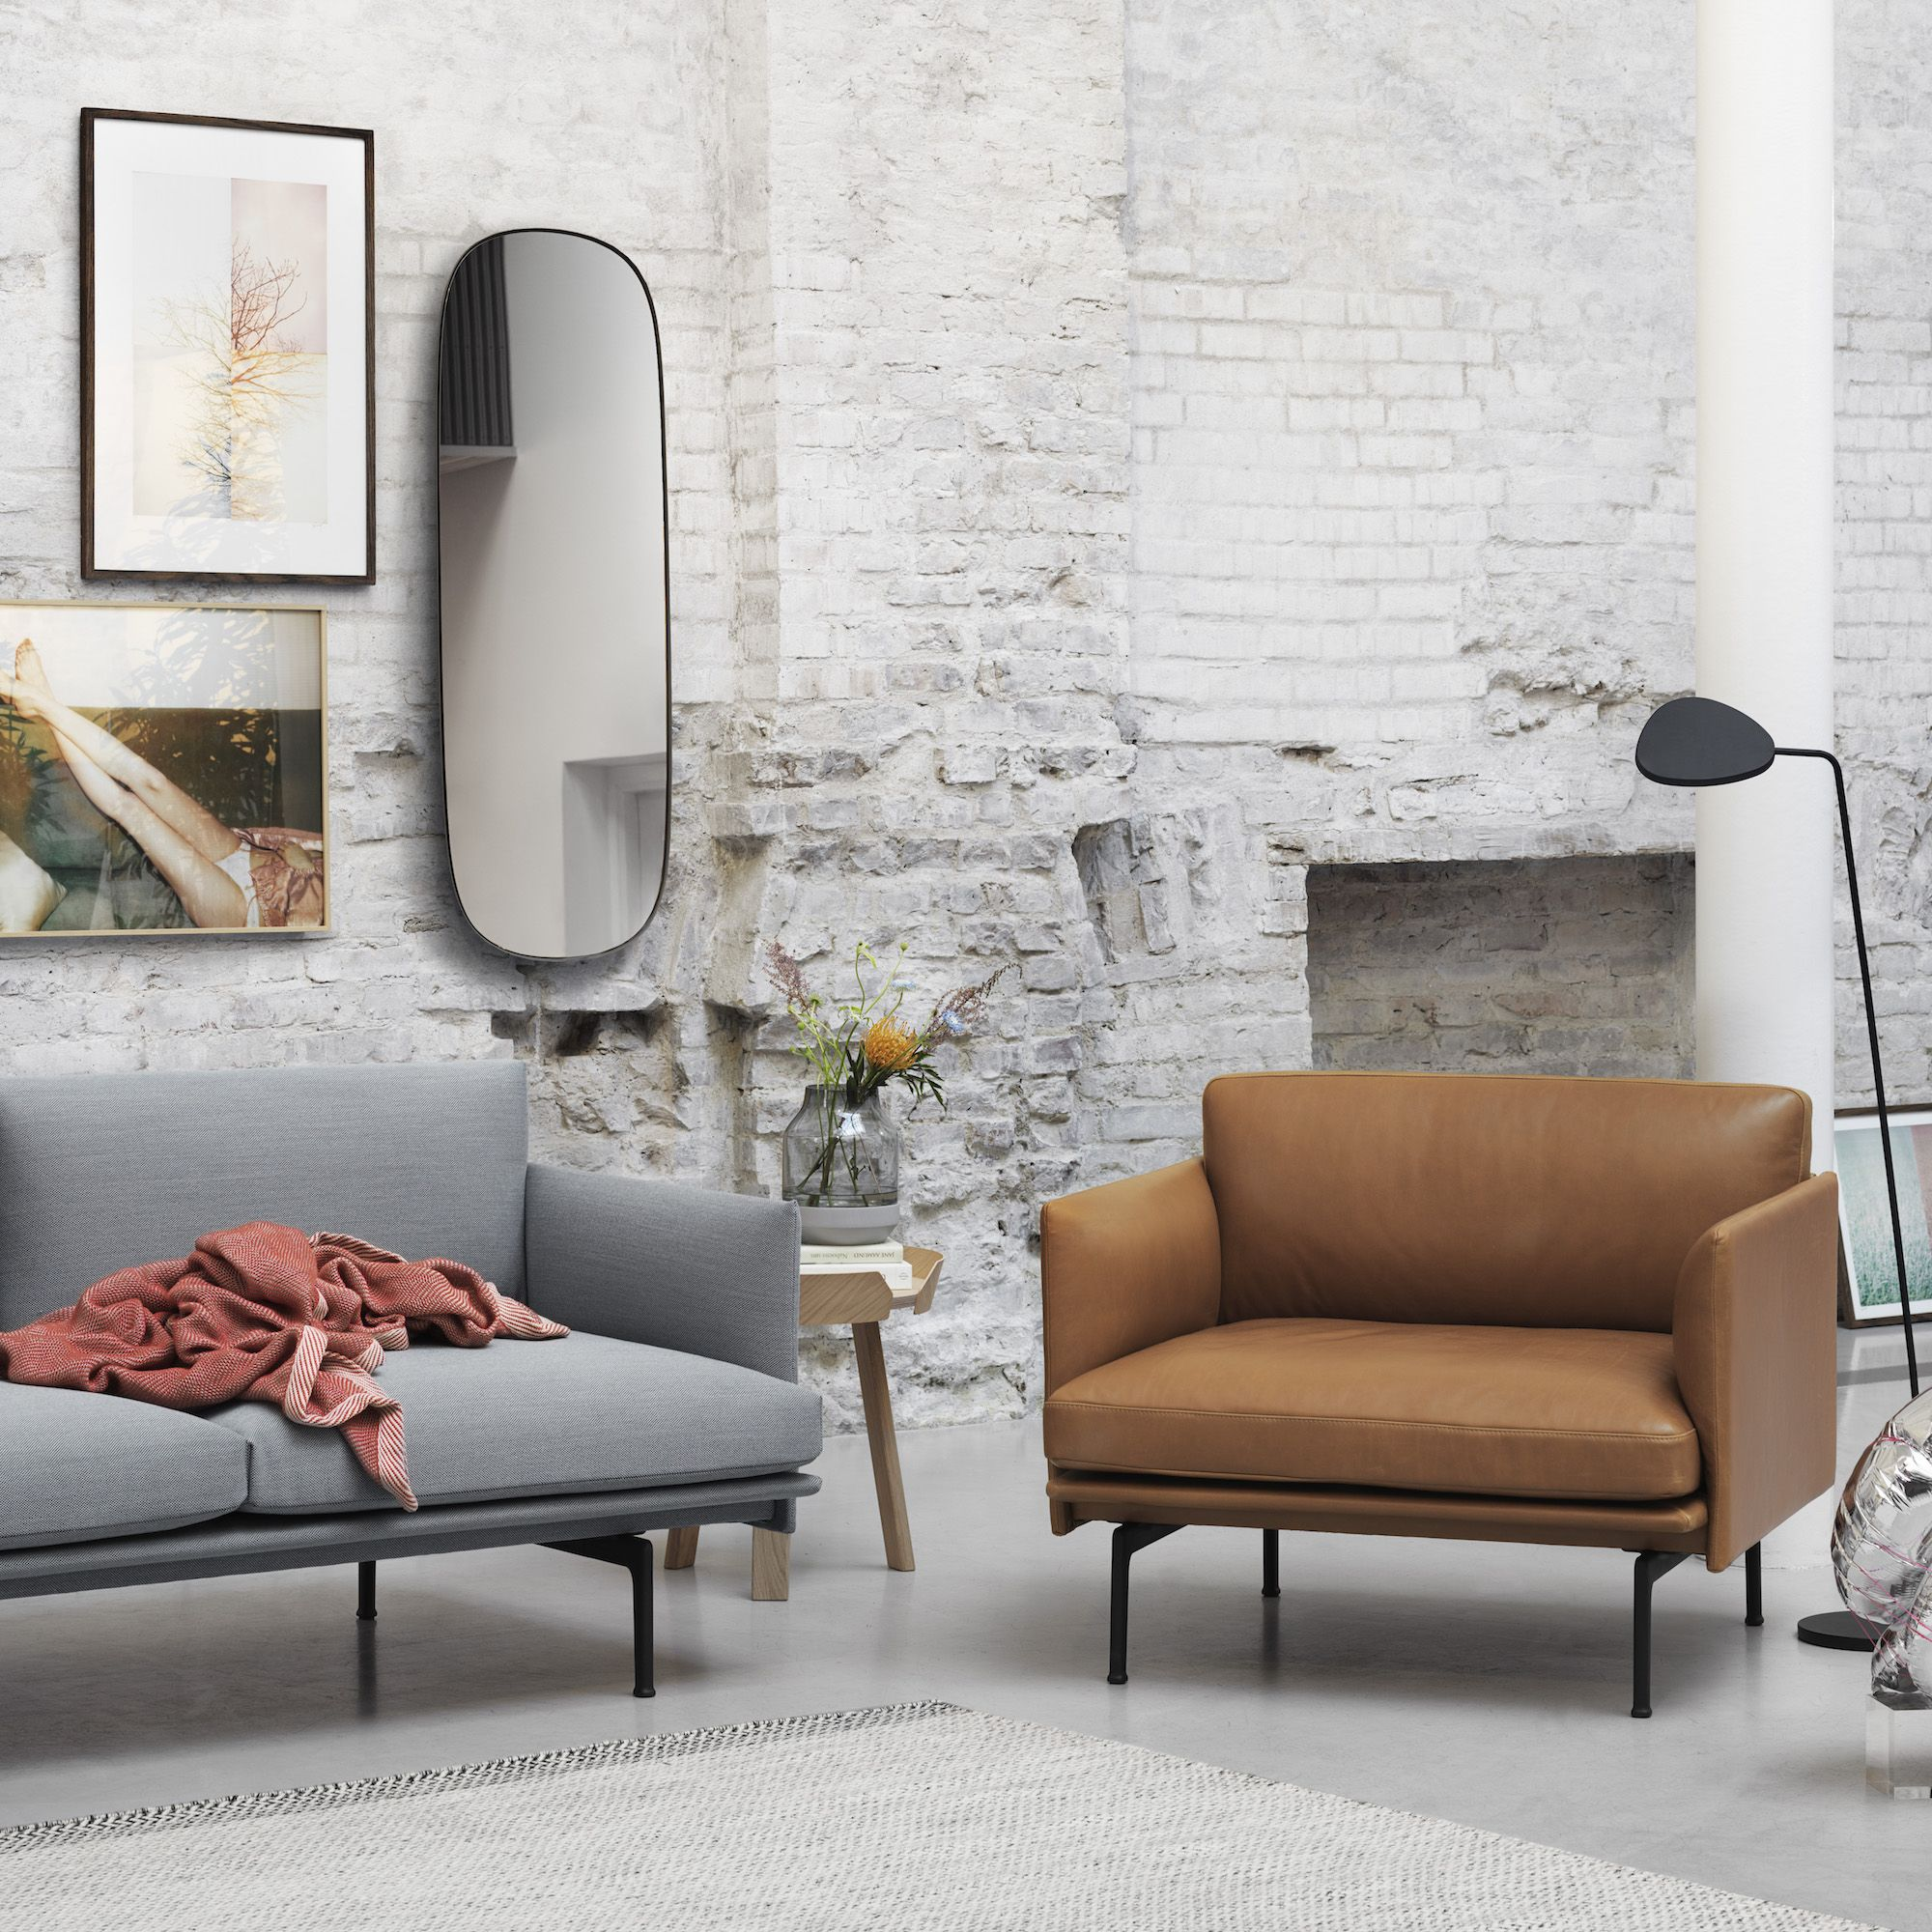 Muuto - OUTLINE Chair & Sofa | Flat | Pinterest | Outlines, Deep ...